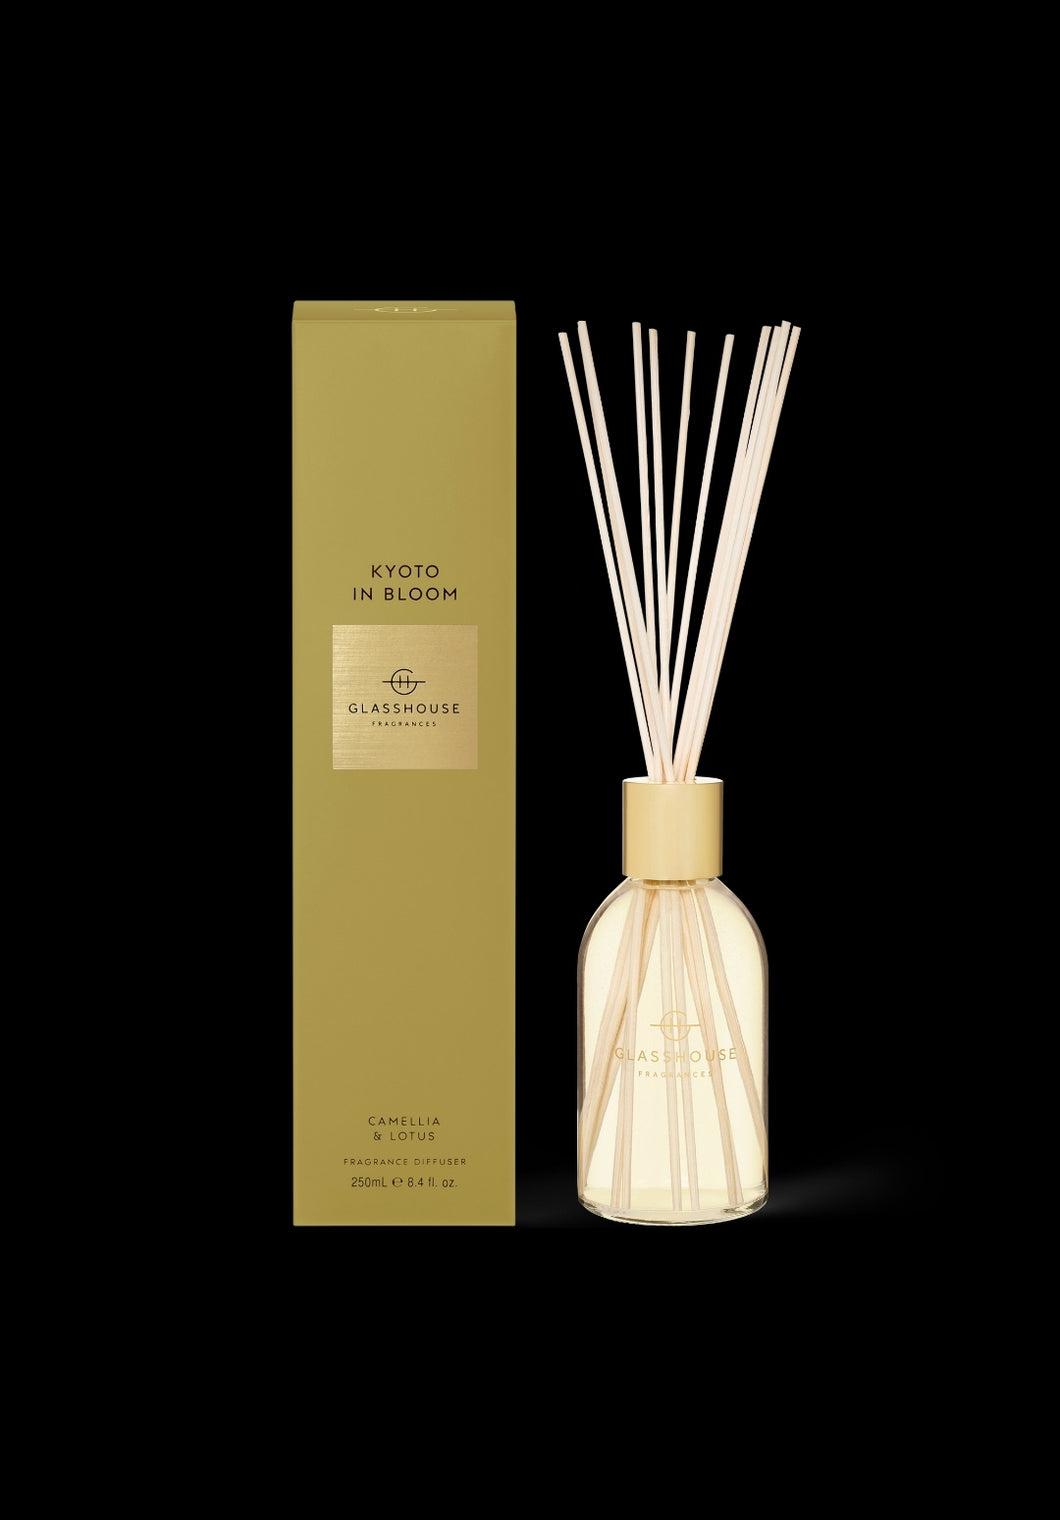 Glasshouse - Diffuser + Candle Duo Gift Pack - Kyoto in Bloom